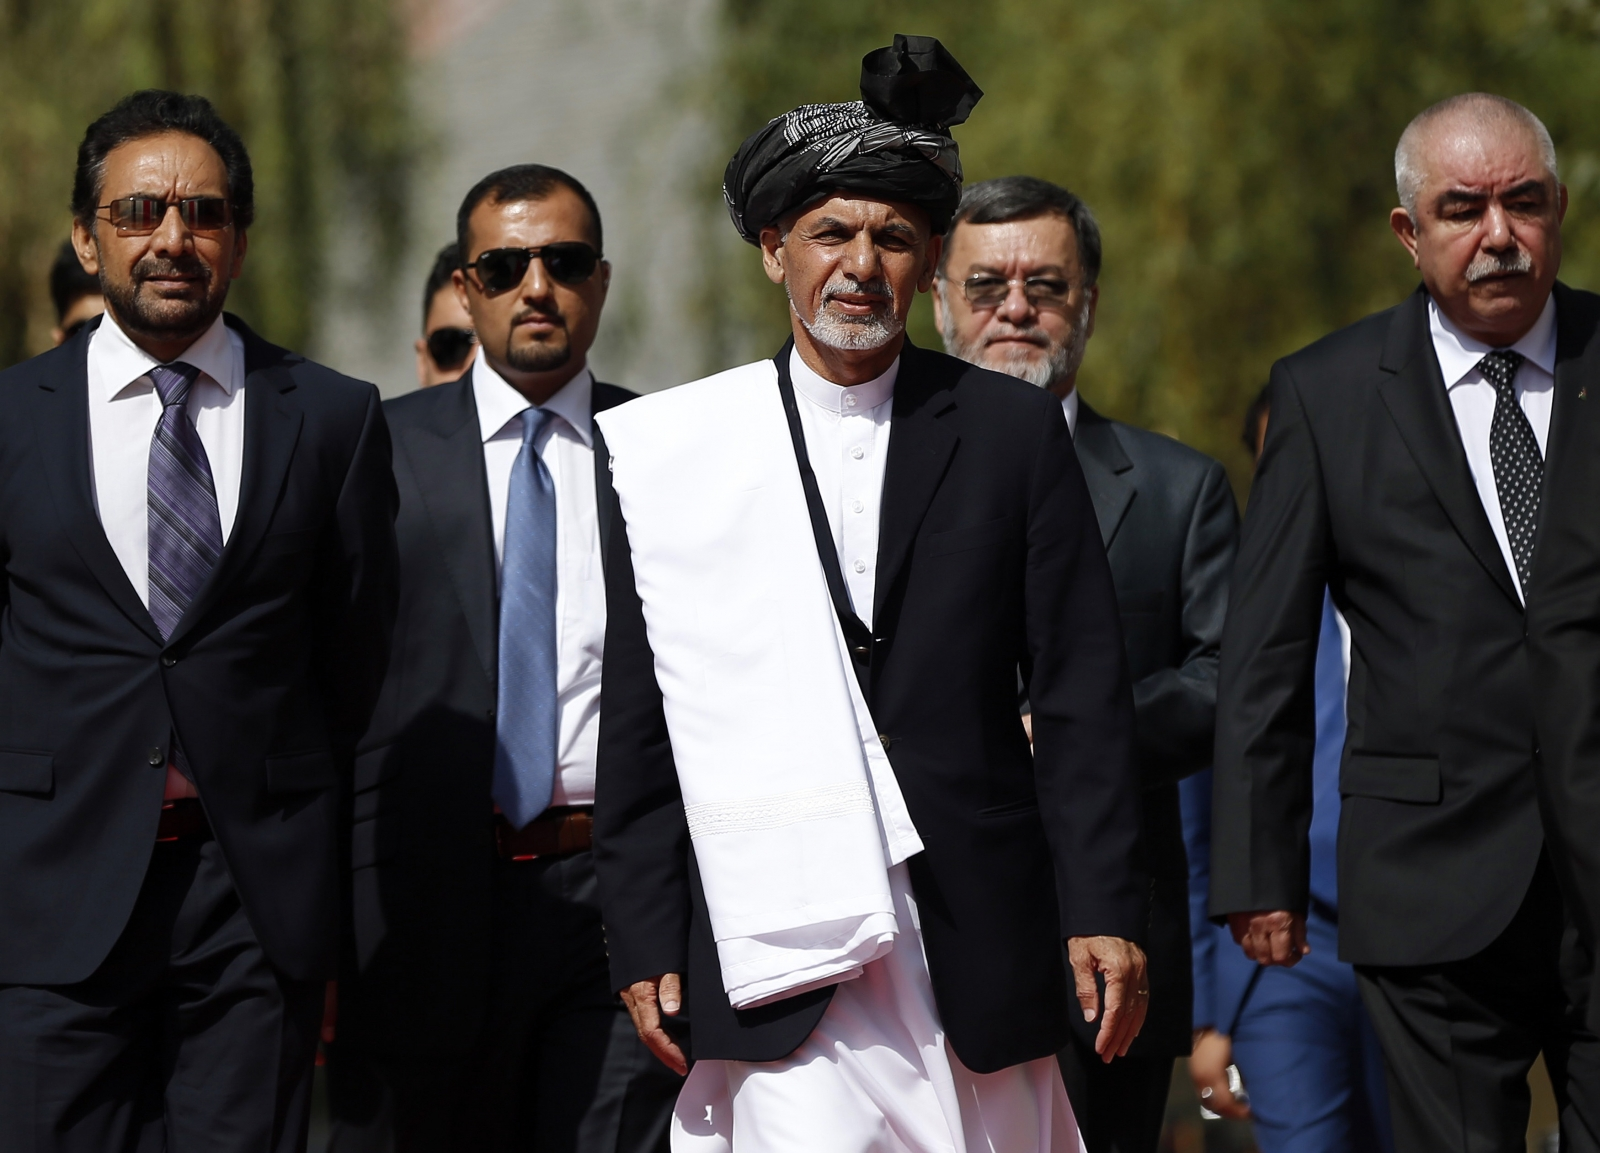 Afghan president swearing-in and Ashraf Ghani's invitation to Taliban for talks